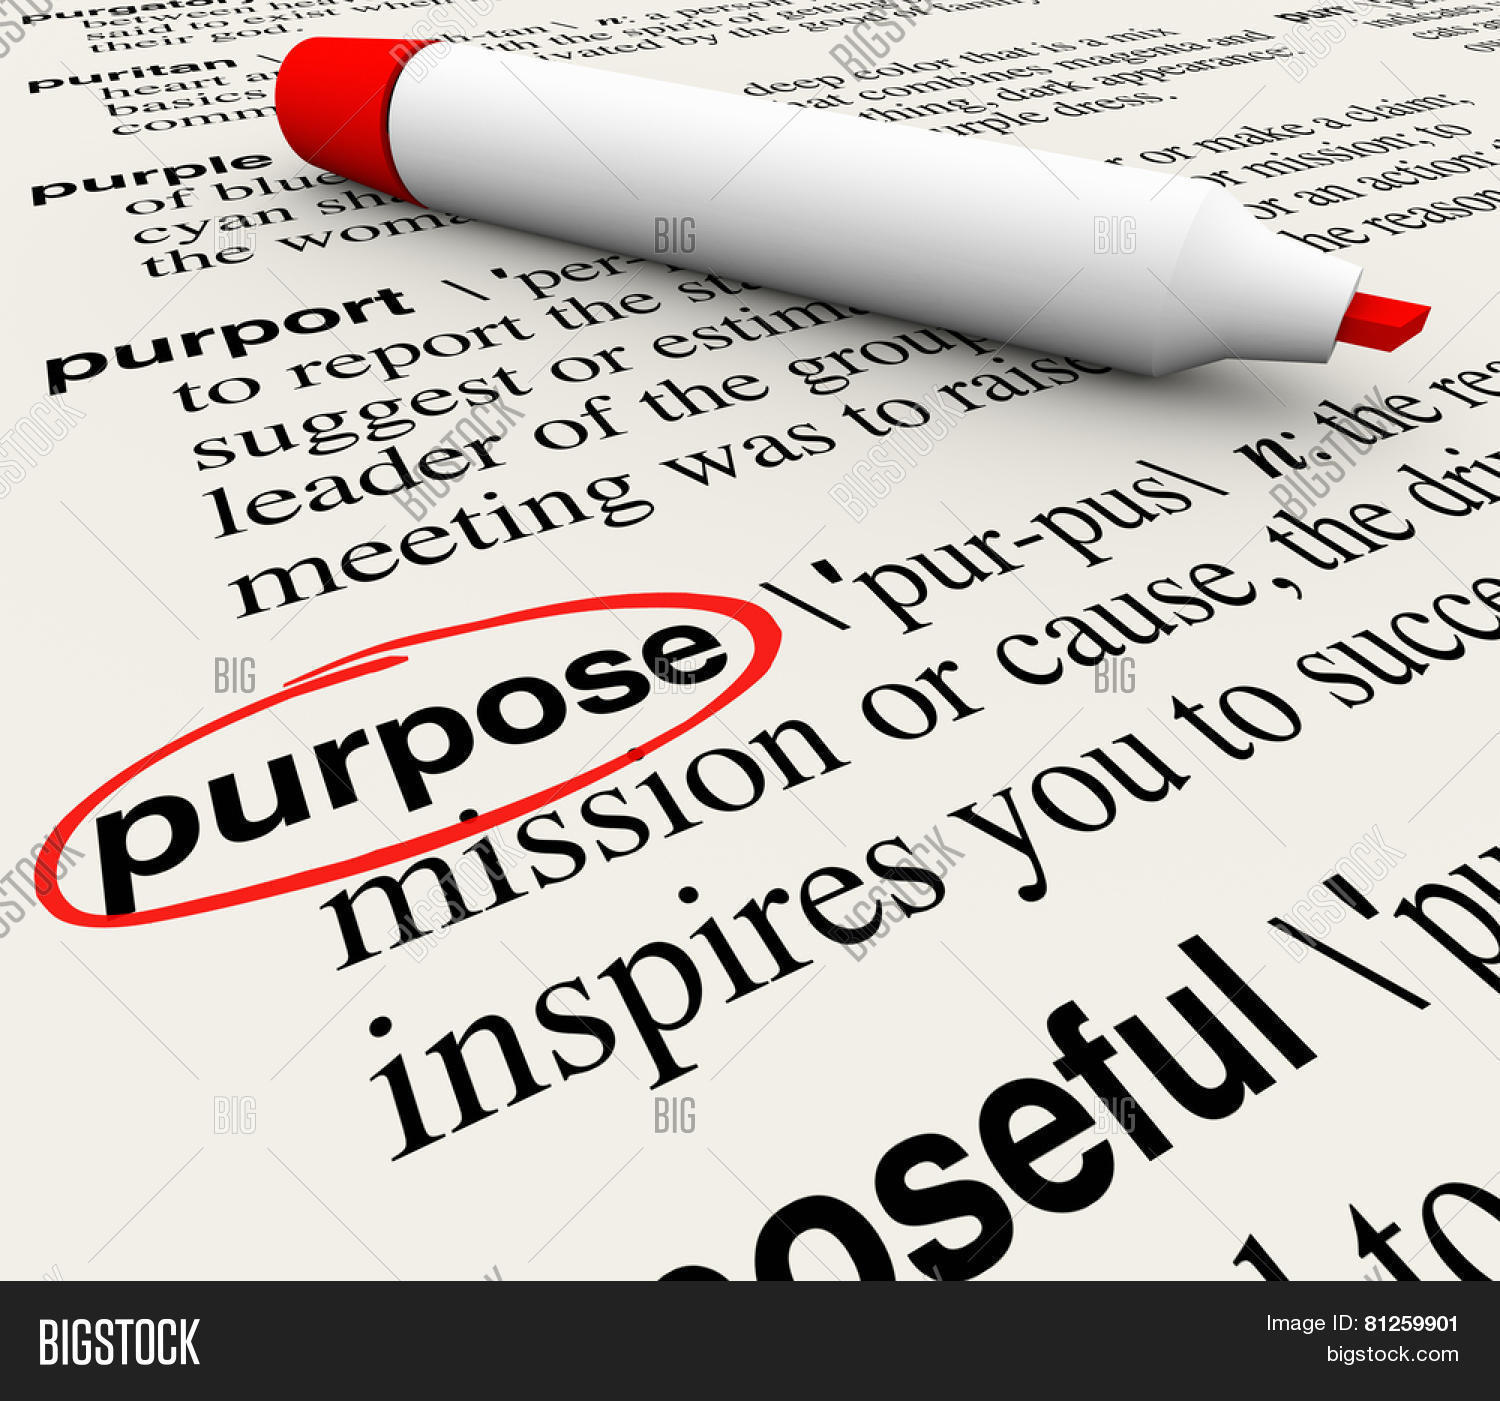 purpose word definition circled on a dictionary page to illustrate purpose word definition circled on a dictionary page to illustrate a deliberate or intentional act